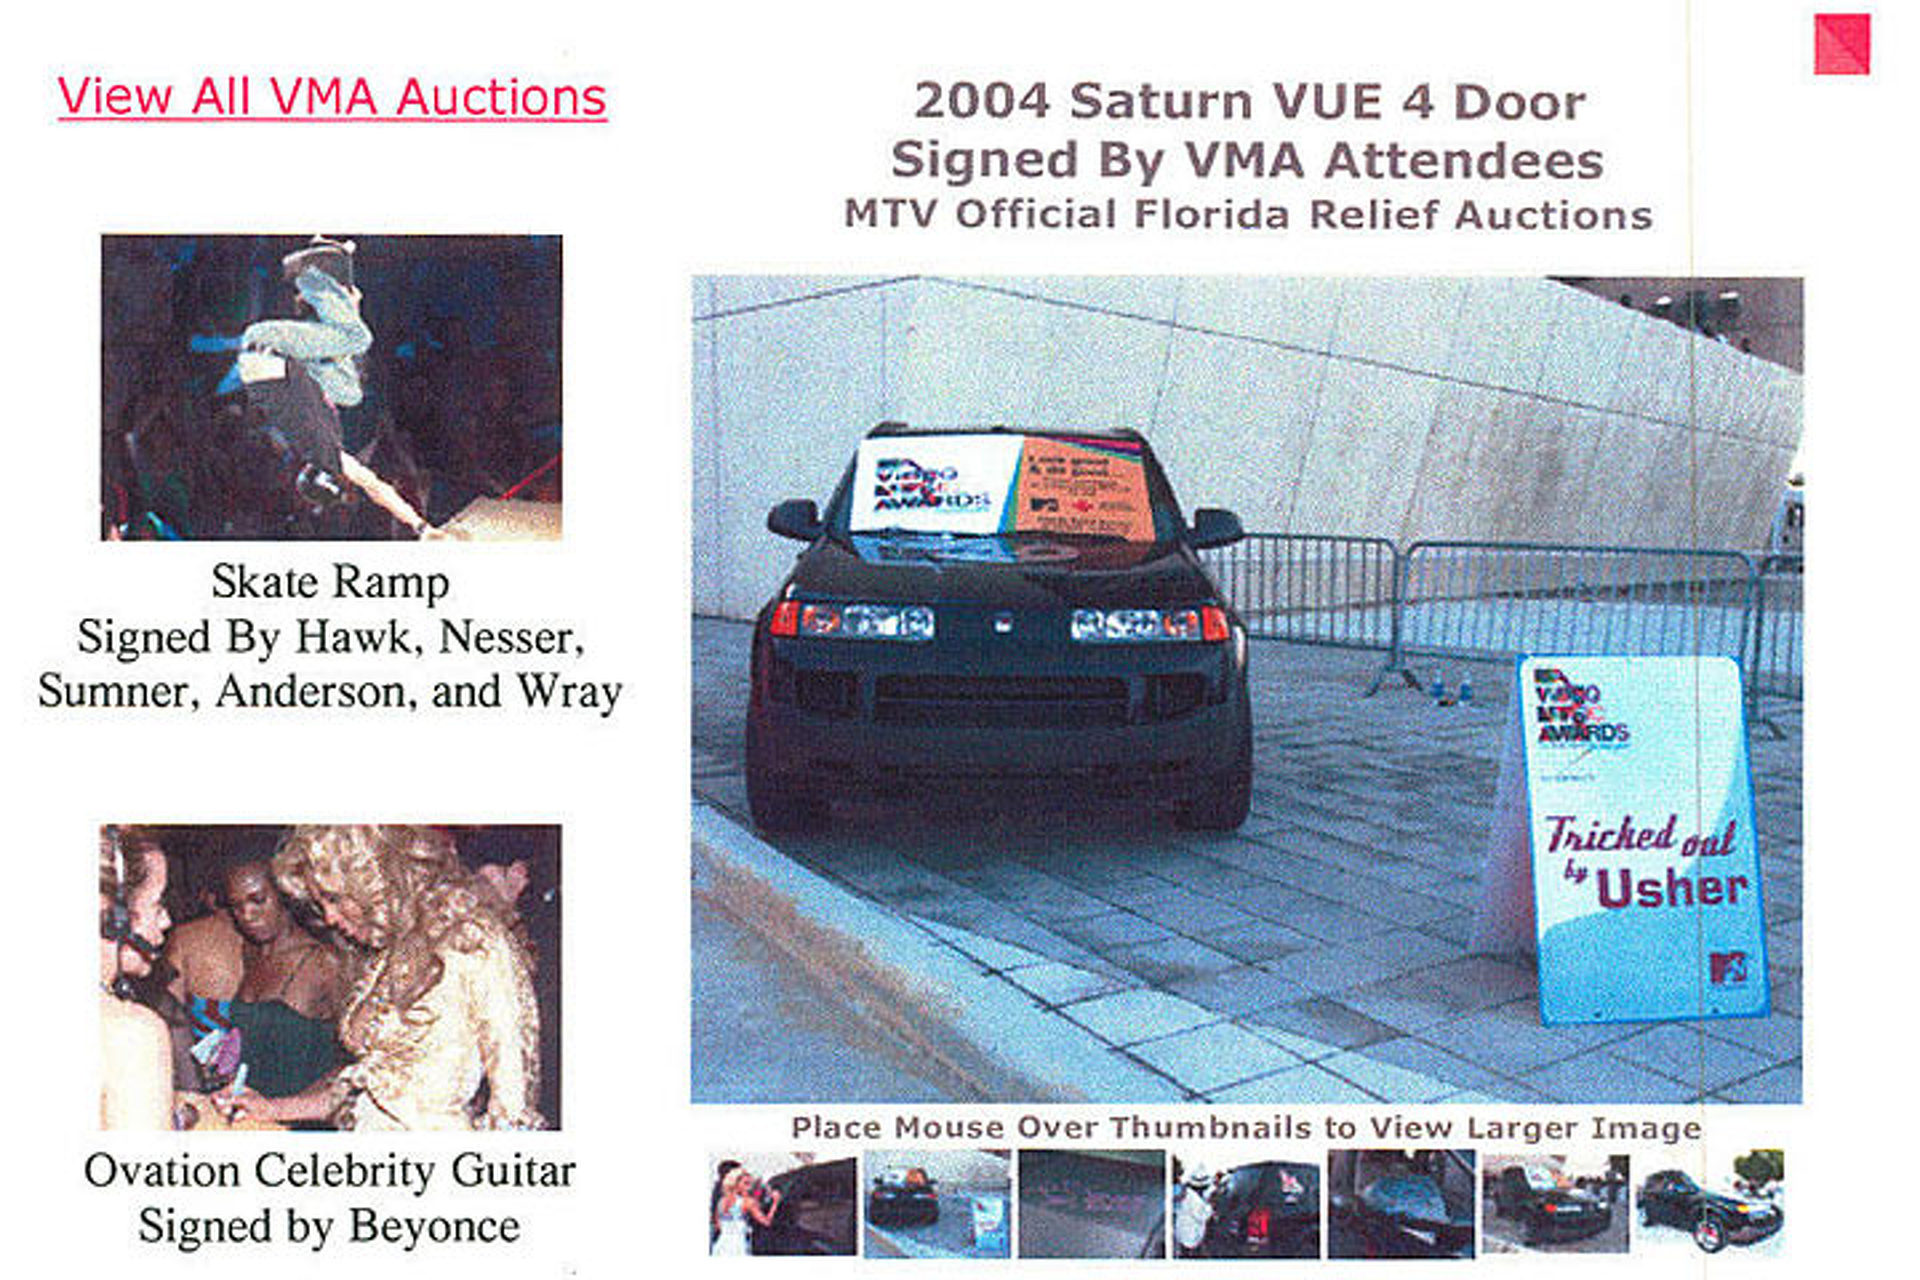 You Can Buy Usher's 2004 MTV VMA Saturn Vue on eBay